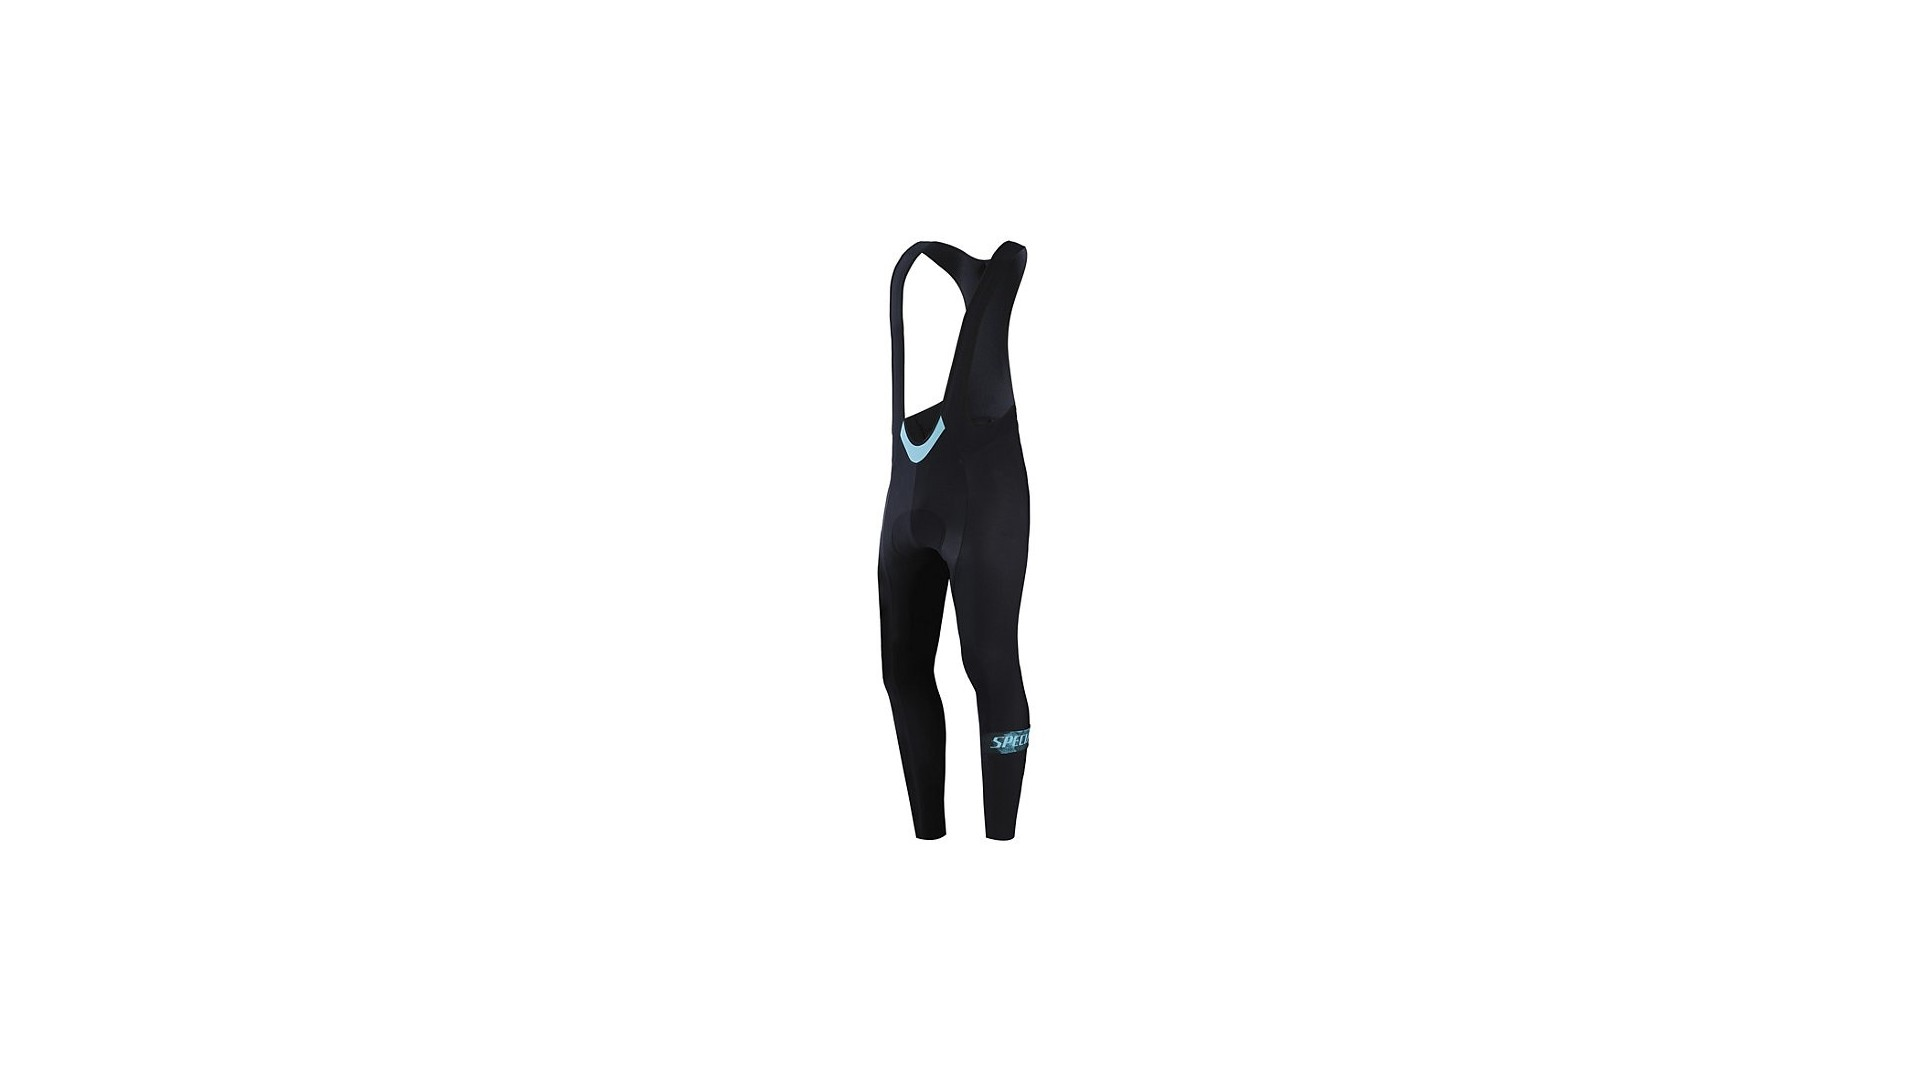 Culotte Therminal Rbx Comp Specialized Black/Teal Camo 2 IBKBike.es